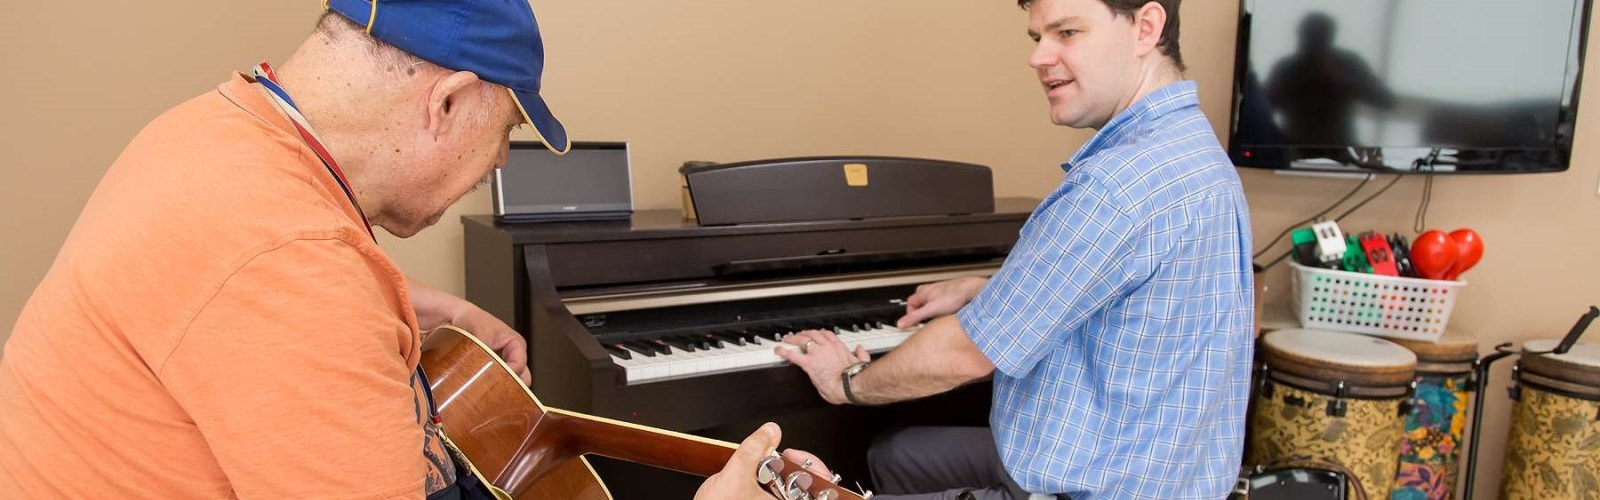 Music therapist plays piano next to older adult playing guitar.